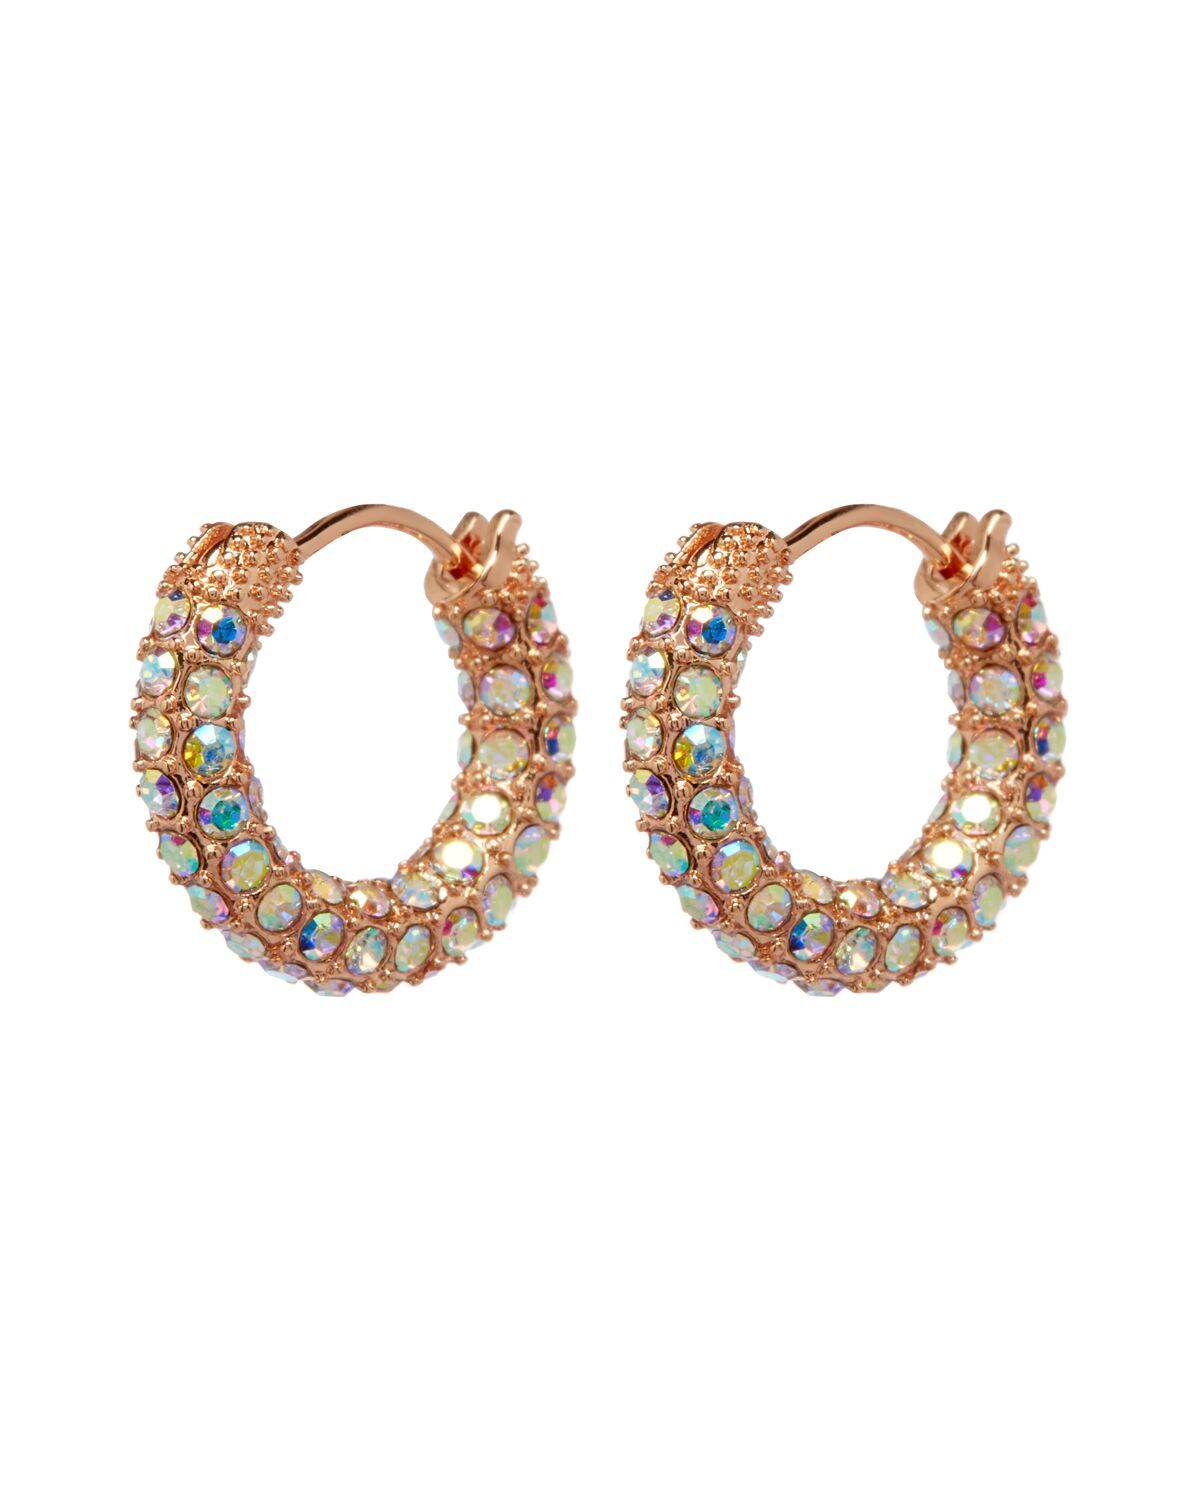 Load image into Gallery viewer, Luv AJ Pave Amalfi Huggies in Rose Gold & Rainbow Crystal